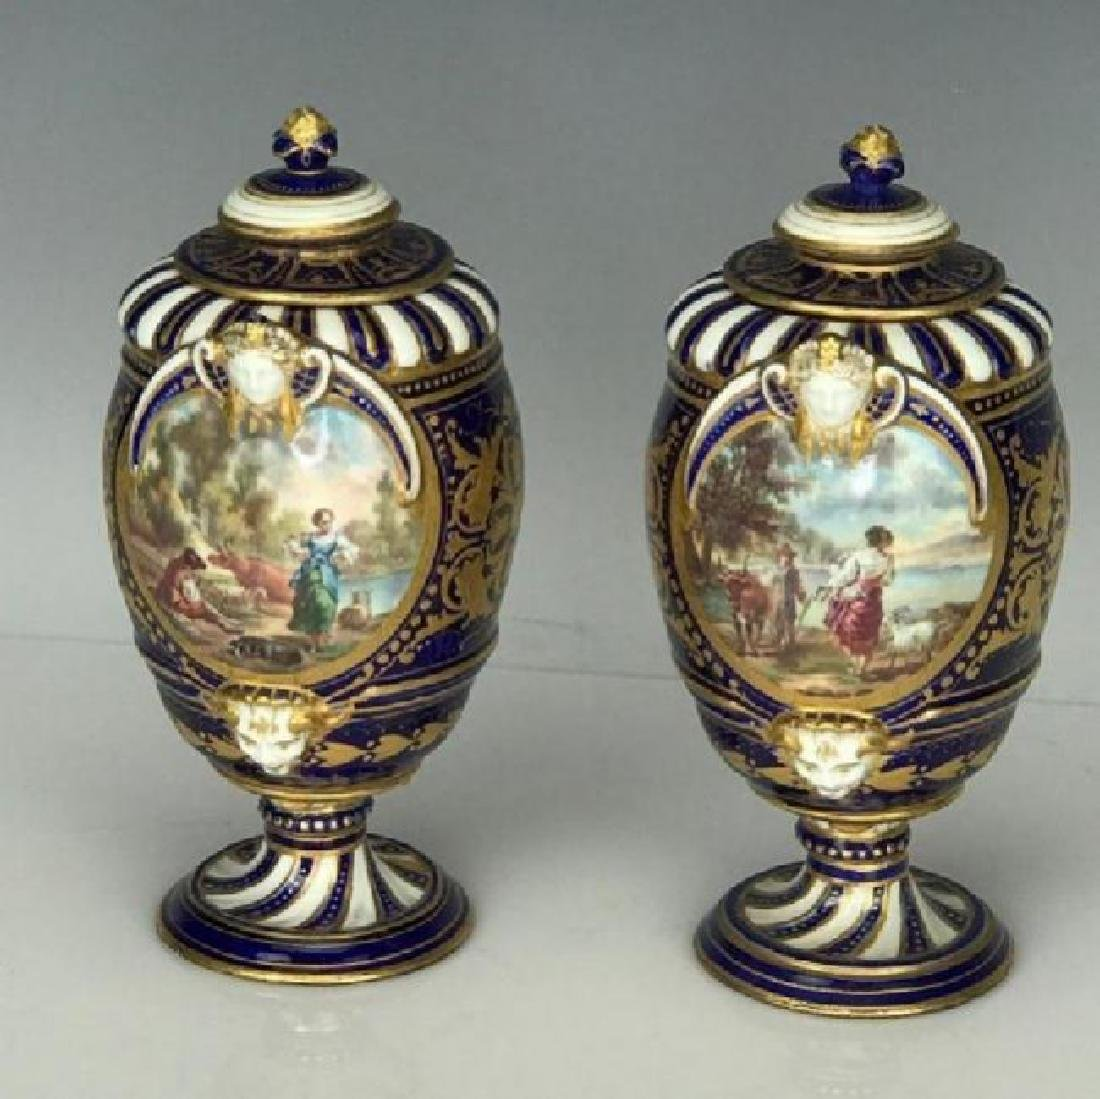 A PAIR OF 19TH C. SEVRES PORCELAIN VASES